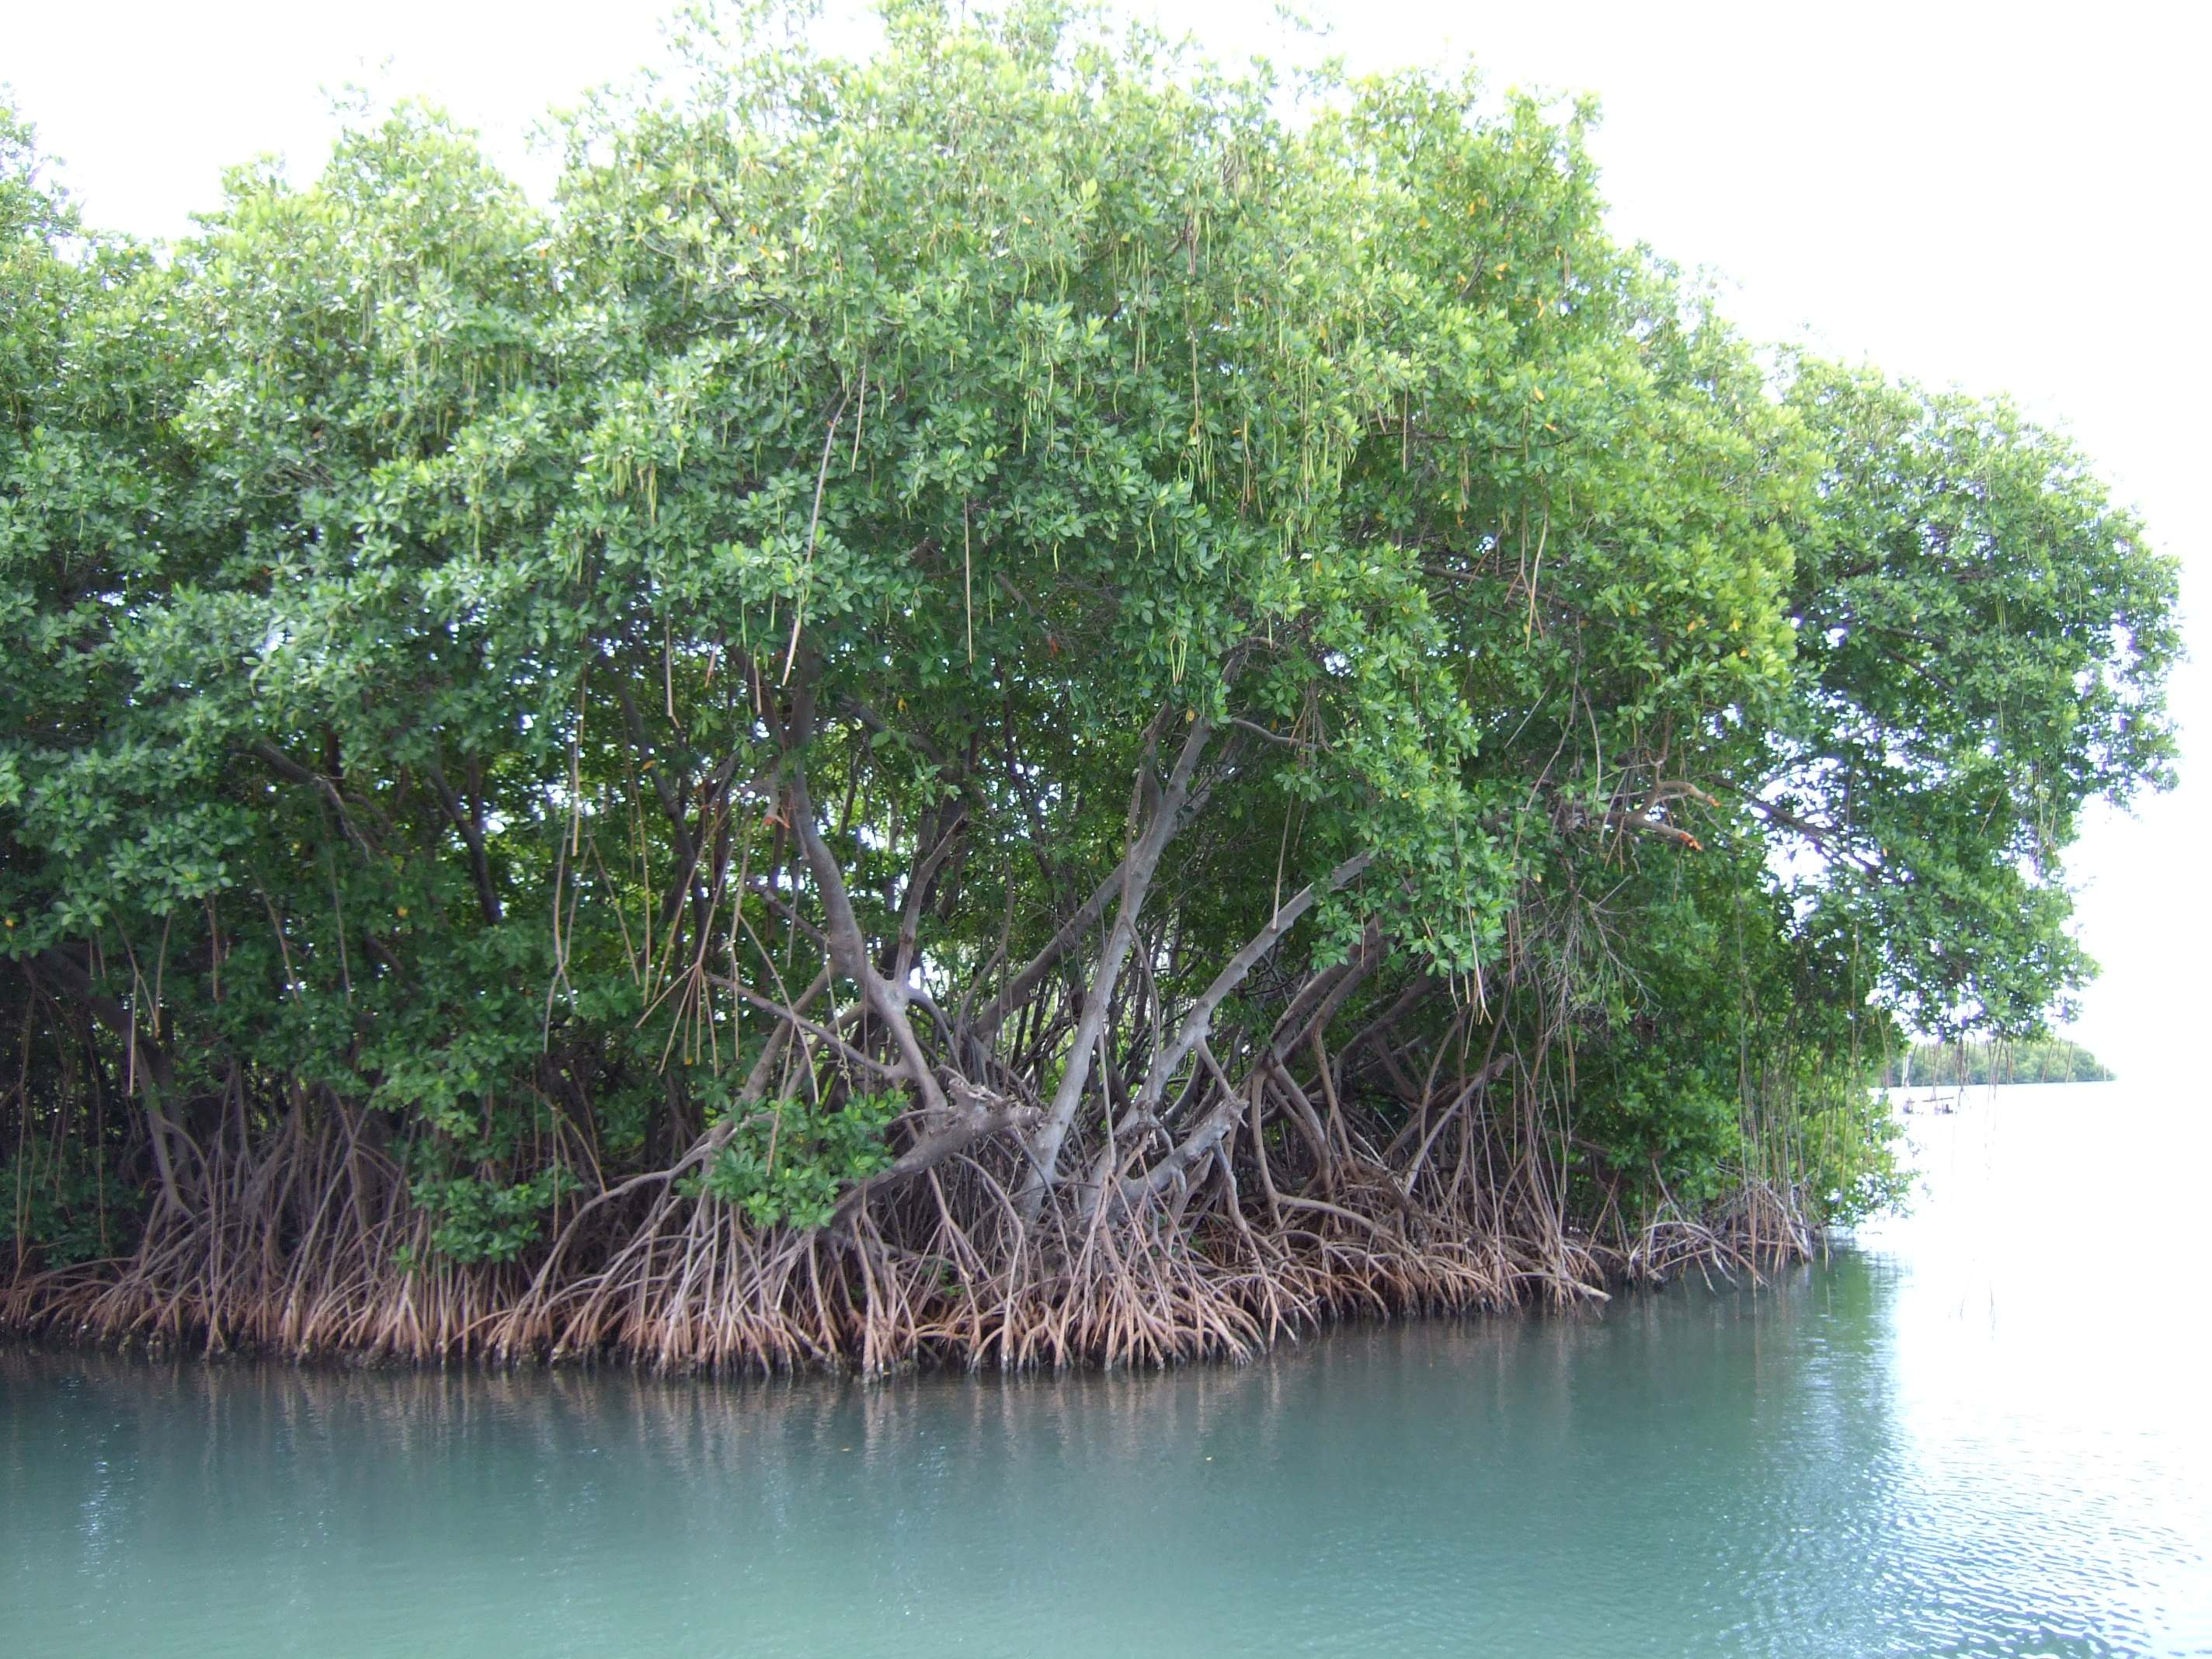 Mangrove roots provide an underwater habitat for many marine species.<div class='credit'><strong>Credit:</strong> Mangrove roots provide an underwater habitat for many marine species.</div>